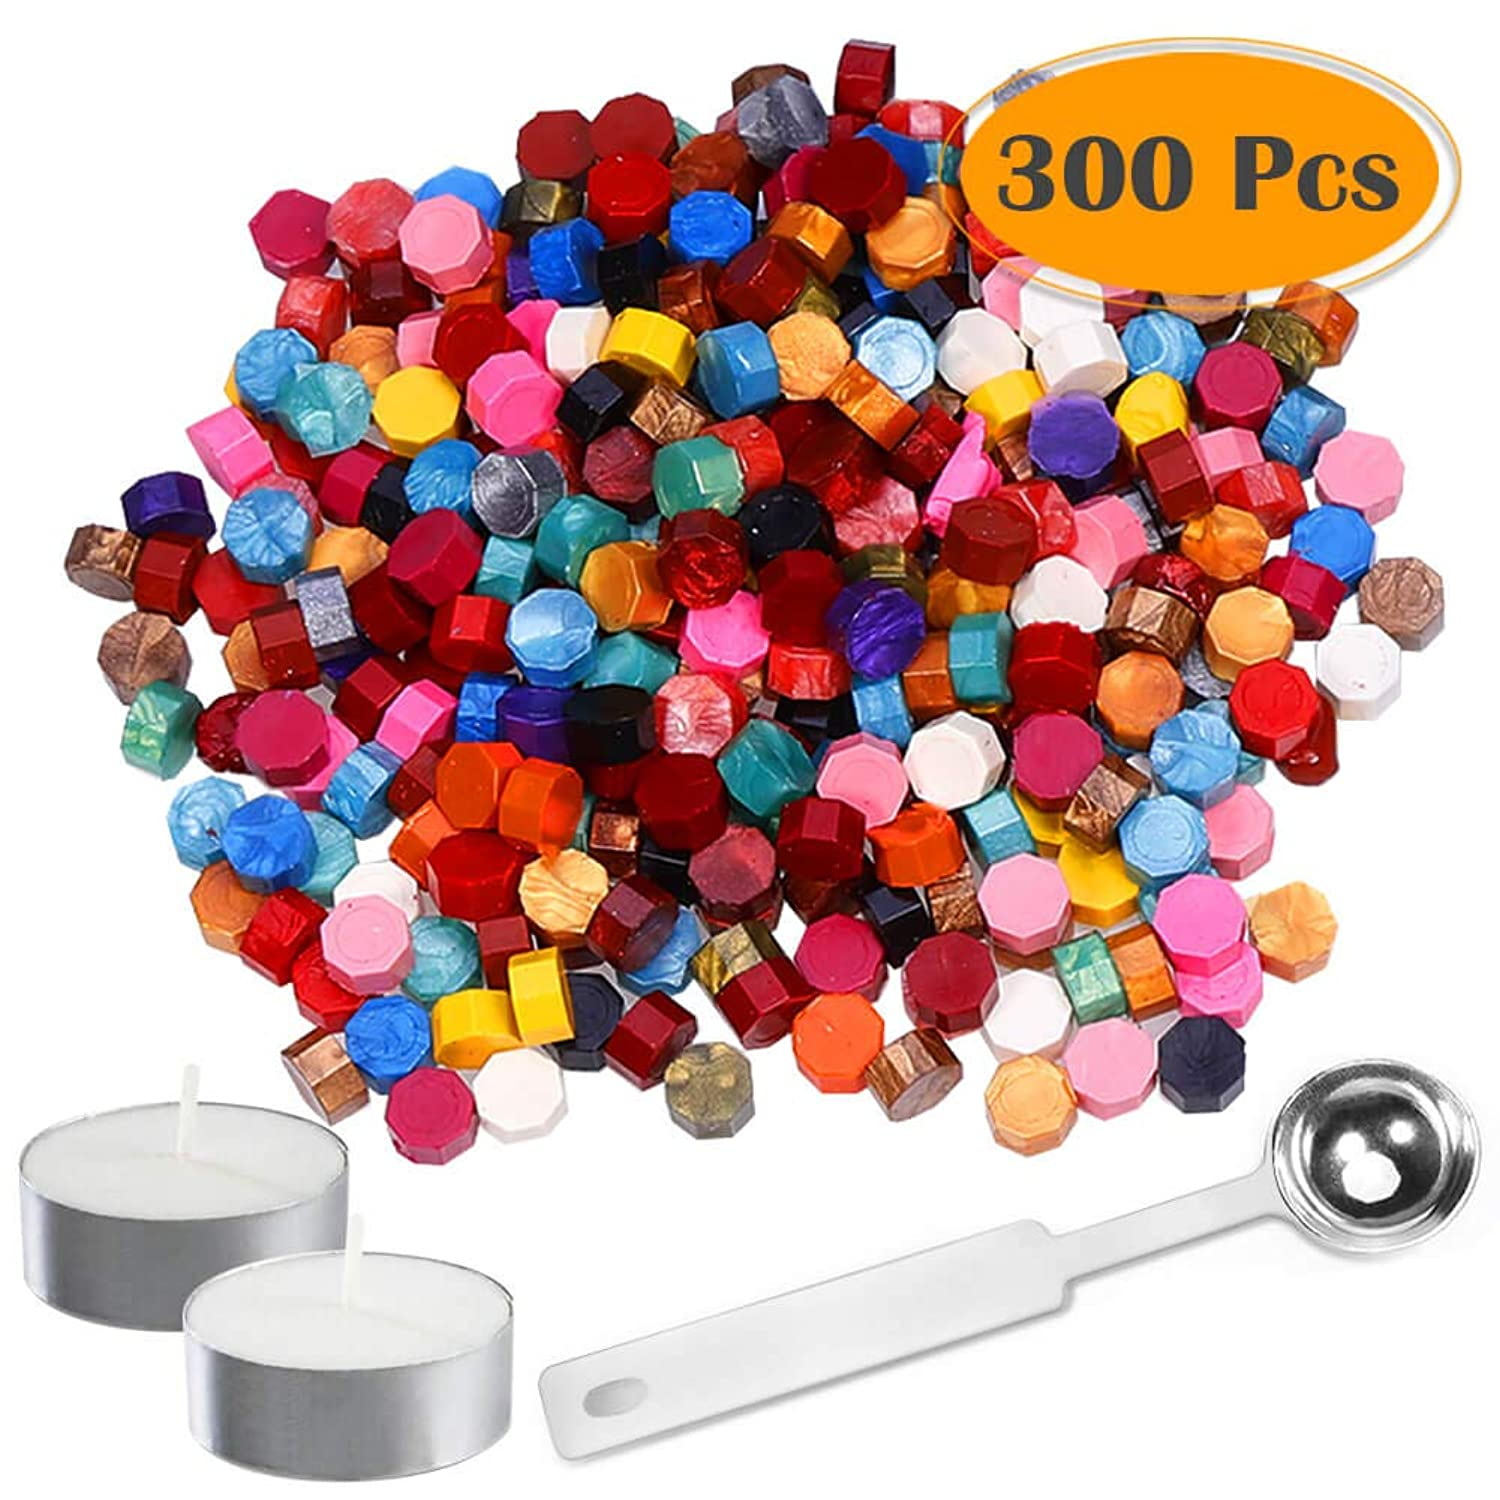 Anezus 300Pcs Octagon Sealing Wax Beads with 2Pcs Tea Candles and 1 Pcs Wax Melting Spoon for Wax Stamp Sealing (20 Colors)